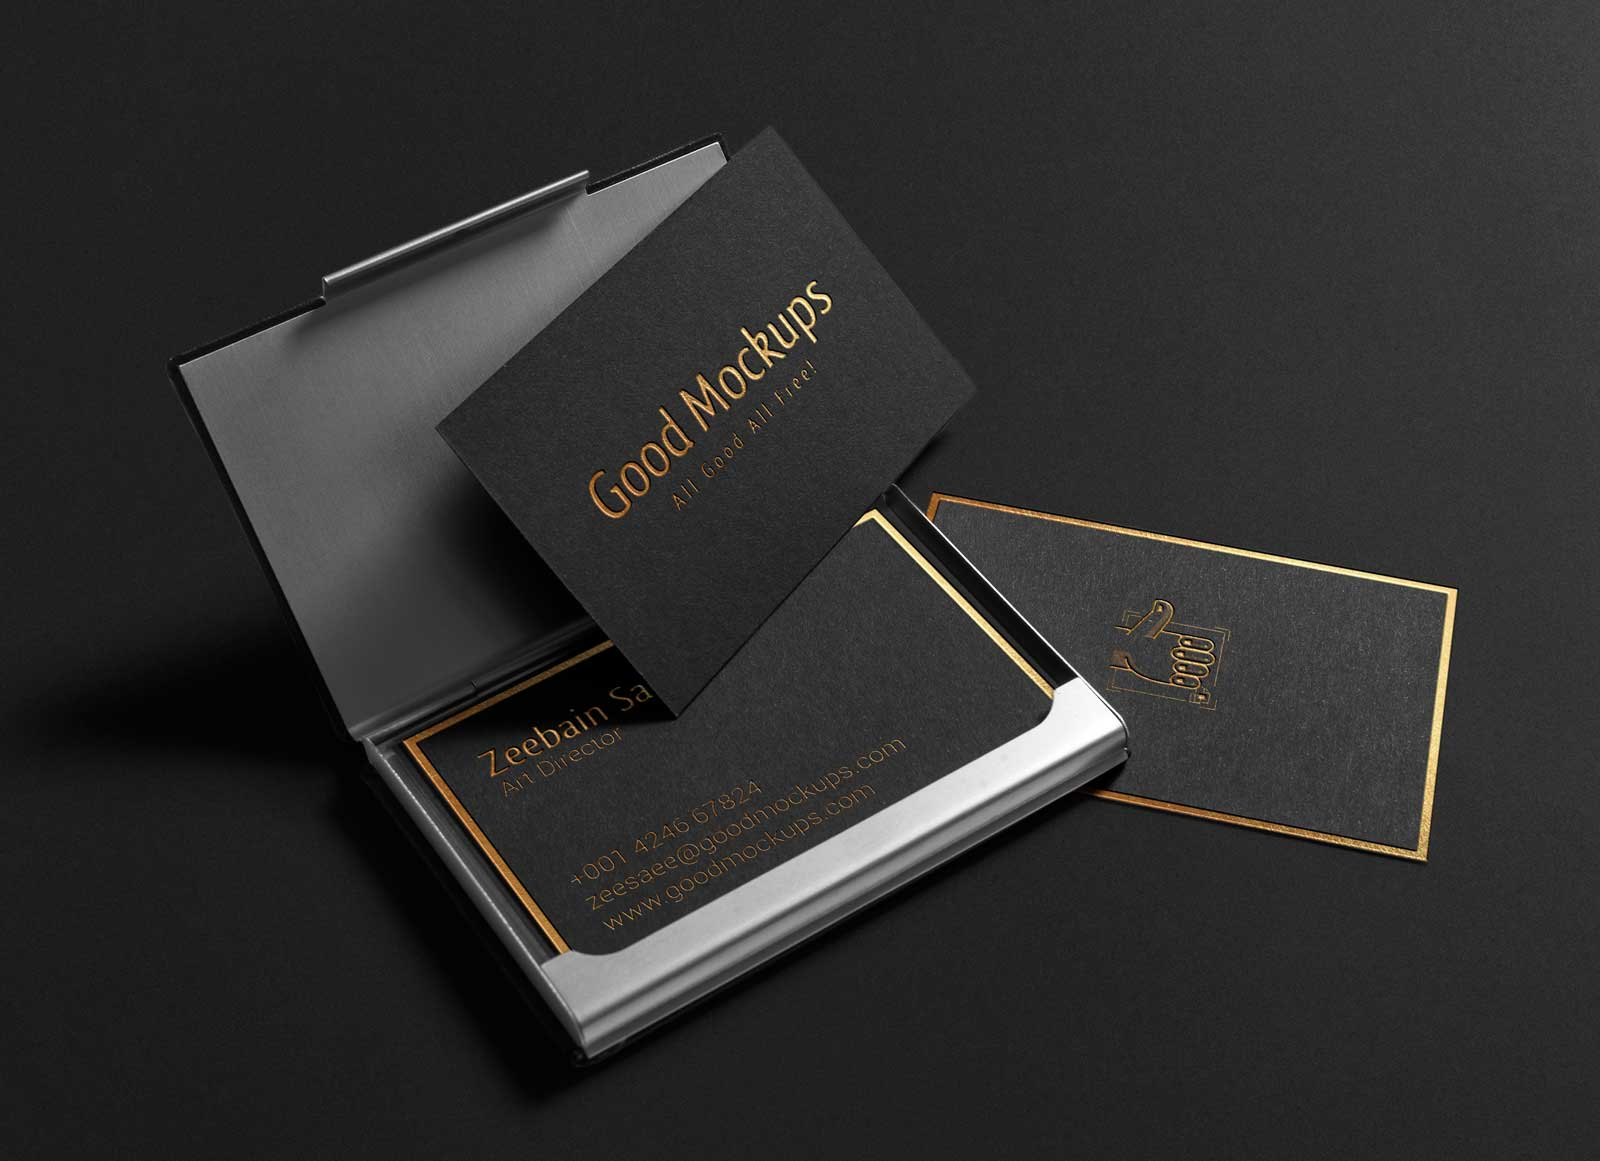 Free black with gold foil lettering business card mockup psd good free black business card mockup psd colourmoves